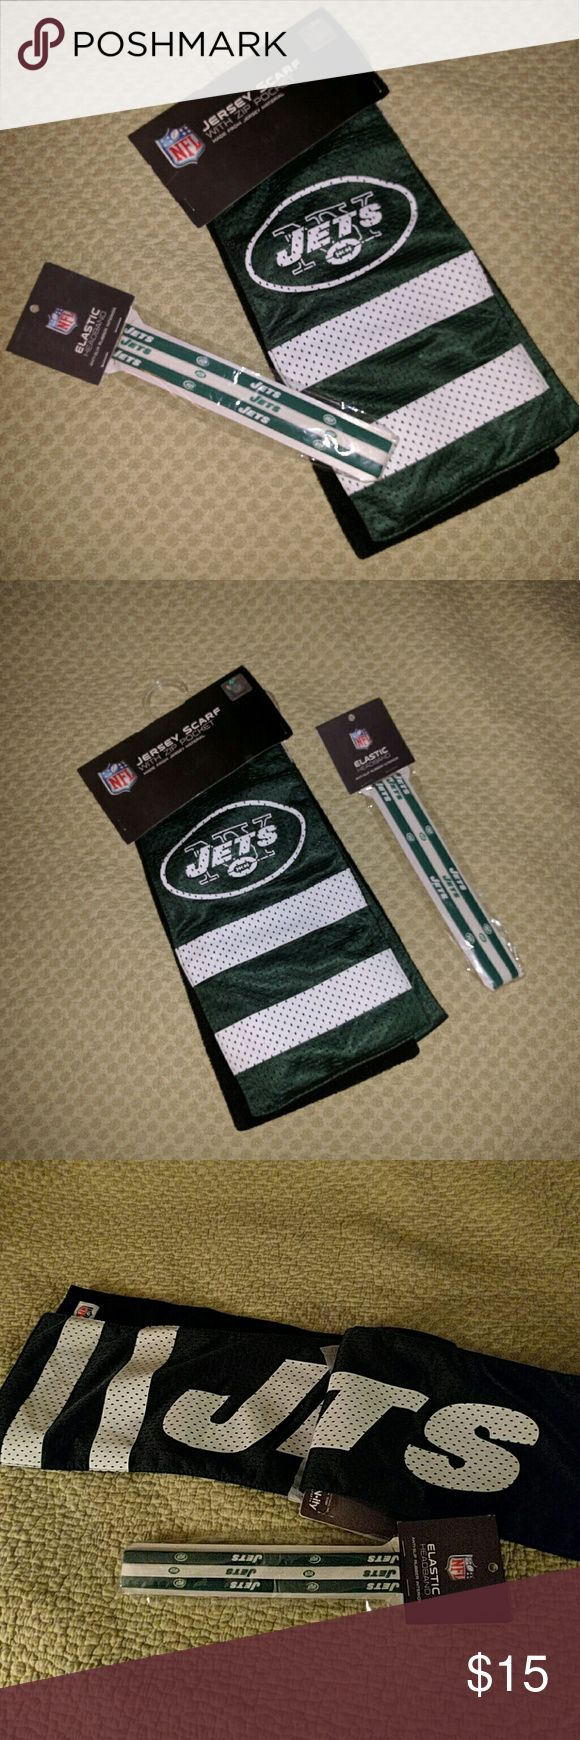 NY JETS jersey scarf and free headbands Adorable green and white New York JETS Jersey scarf and free JETS headbands. 4 elastic headbands in pack. Scarf has a pocket!! 2 scarves and headband packages available. ProFaNity Accessories Scarves & Wraps